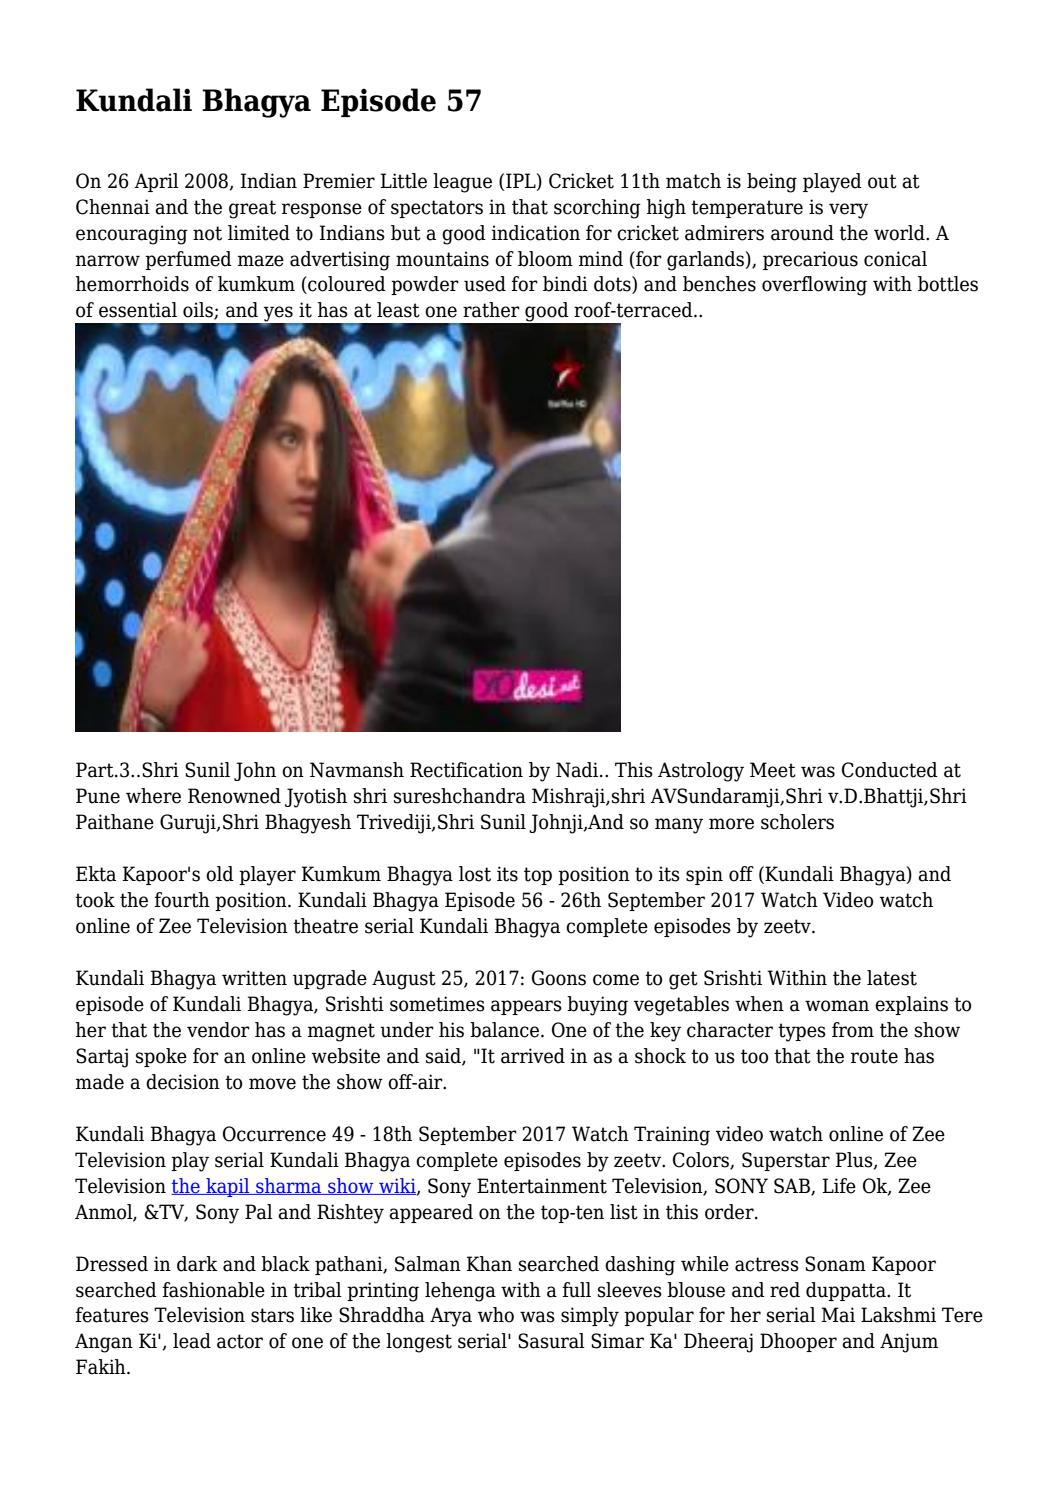 Kundali Bhagya Episode 57    by george voyzey - issuu